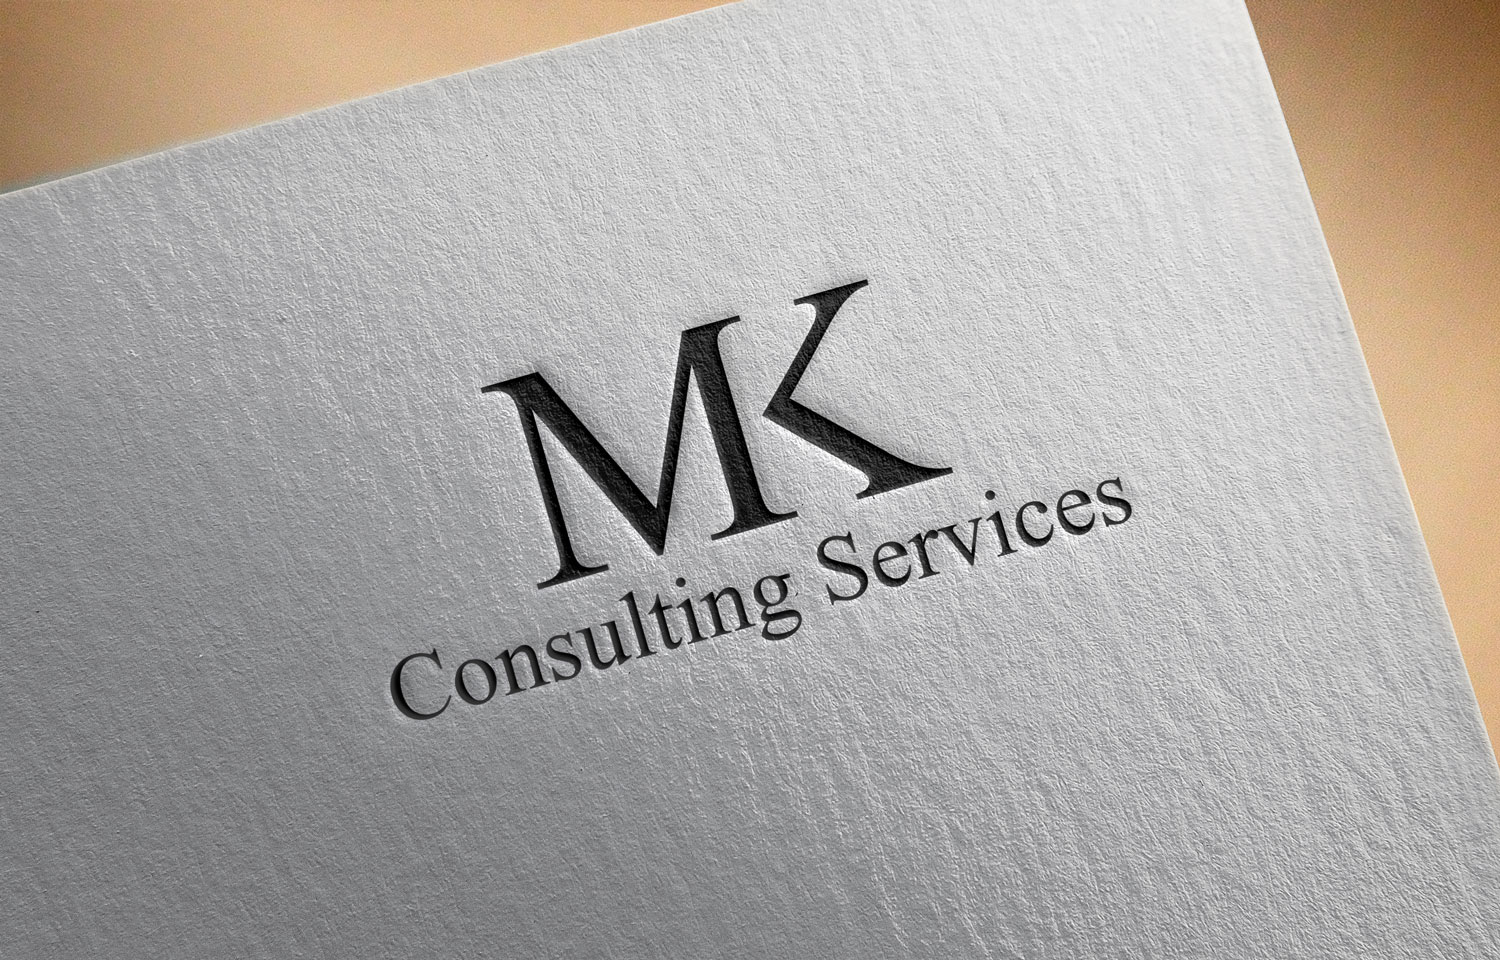 167 serious professional business consultant logo designs for Design consulting services